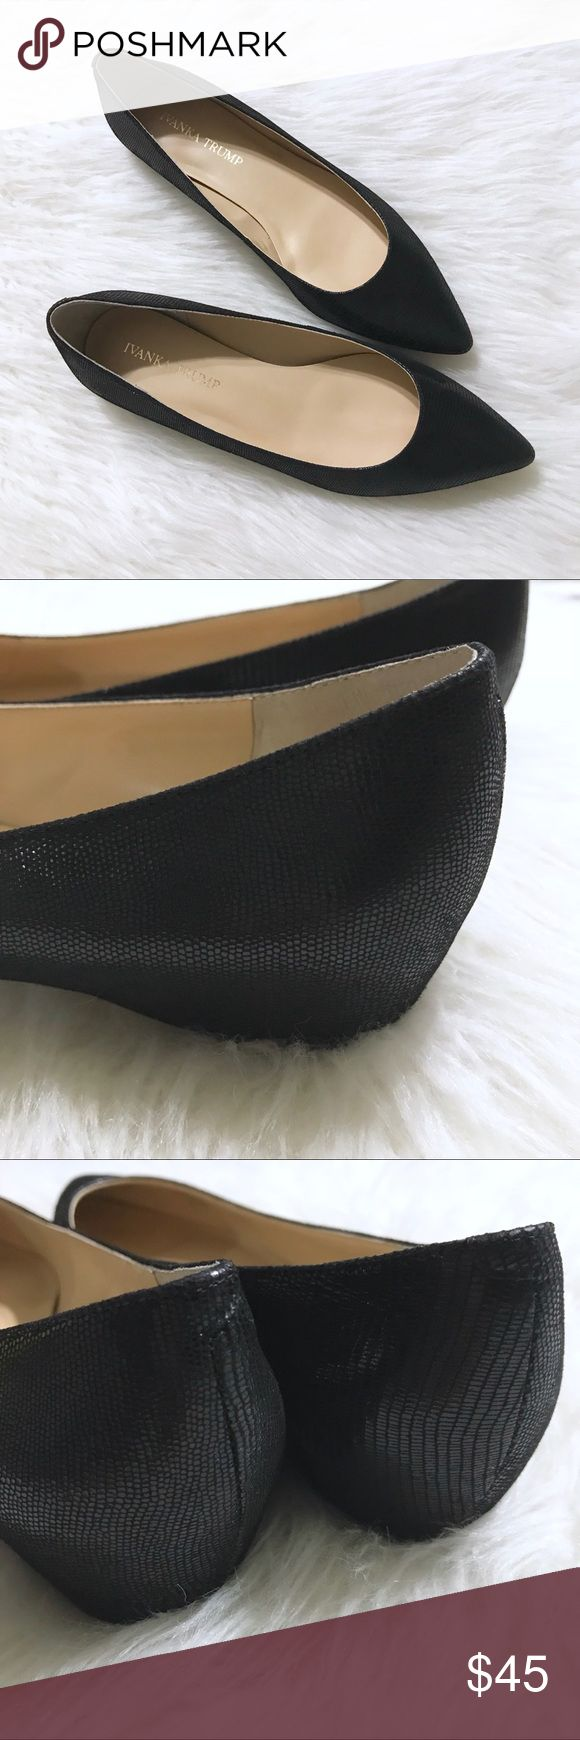 Snake-print Black Flats Versatile pair of leather snake print black flats. Worn once. Box included. Excellent condition. Marked size 8W. Currently selling for full price at online retailers. Ivanka Trump Shoes Flats & Loafers